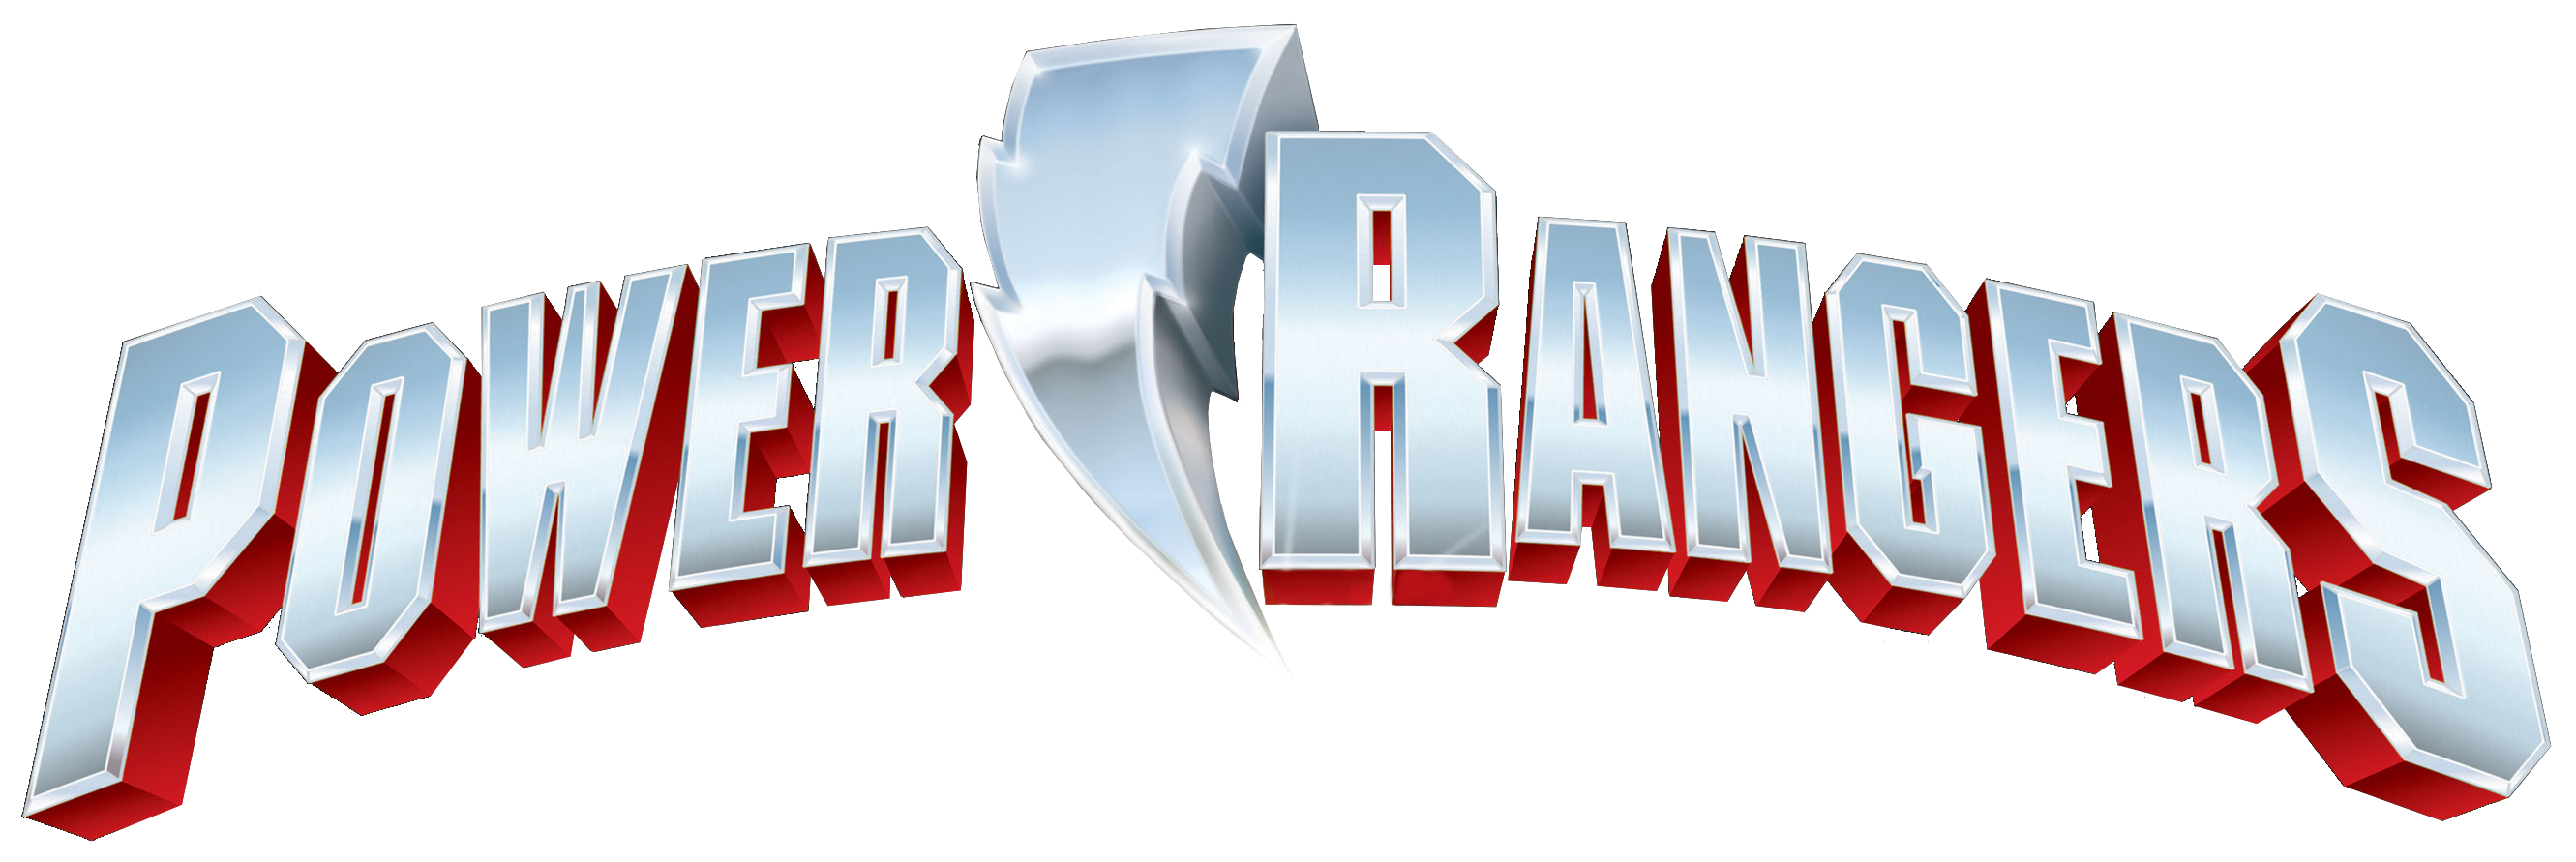 Power rangers logo png clipart clipart library library Power rangers logo png clipart - ClipartFest clipart library library